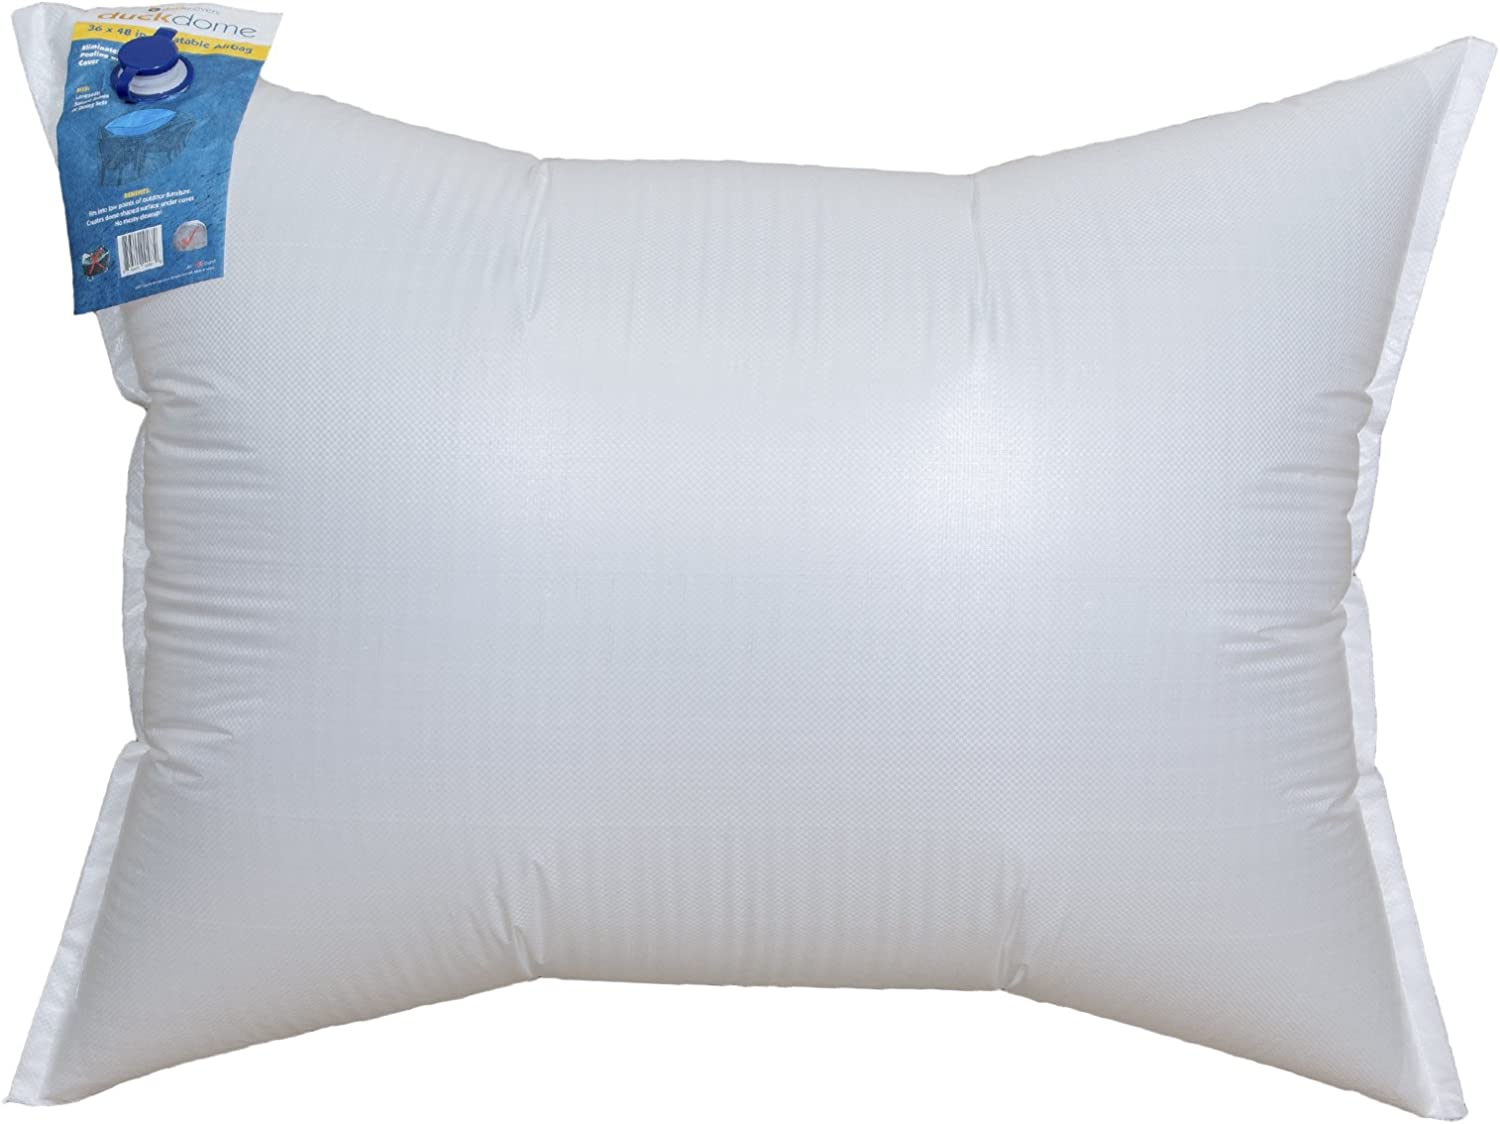 Duck Covers 48 x 36 Inch Rectangular Duck Dome Airbag